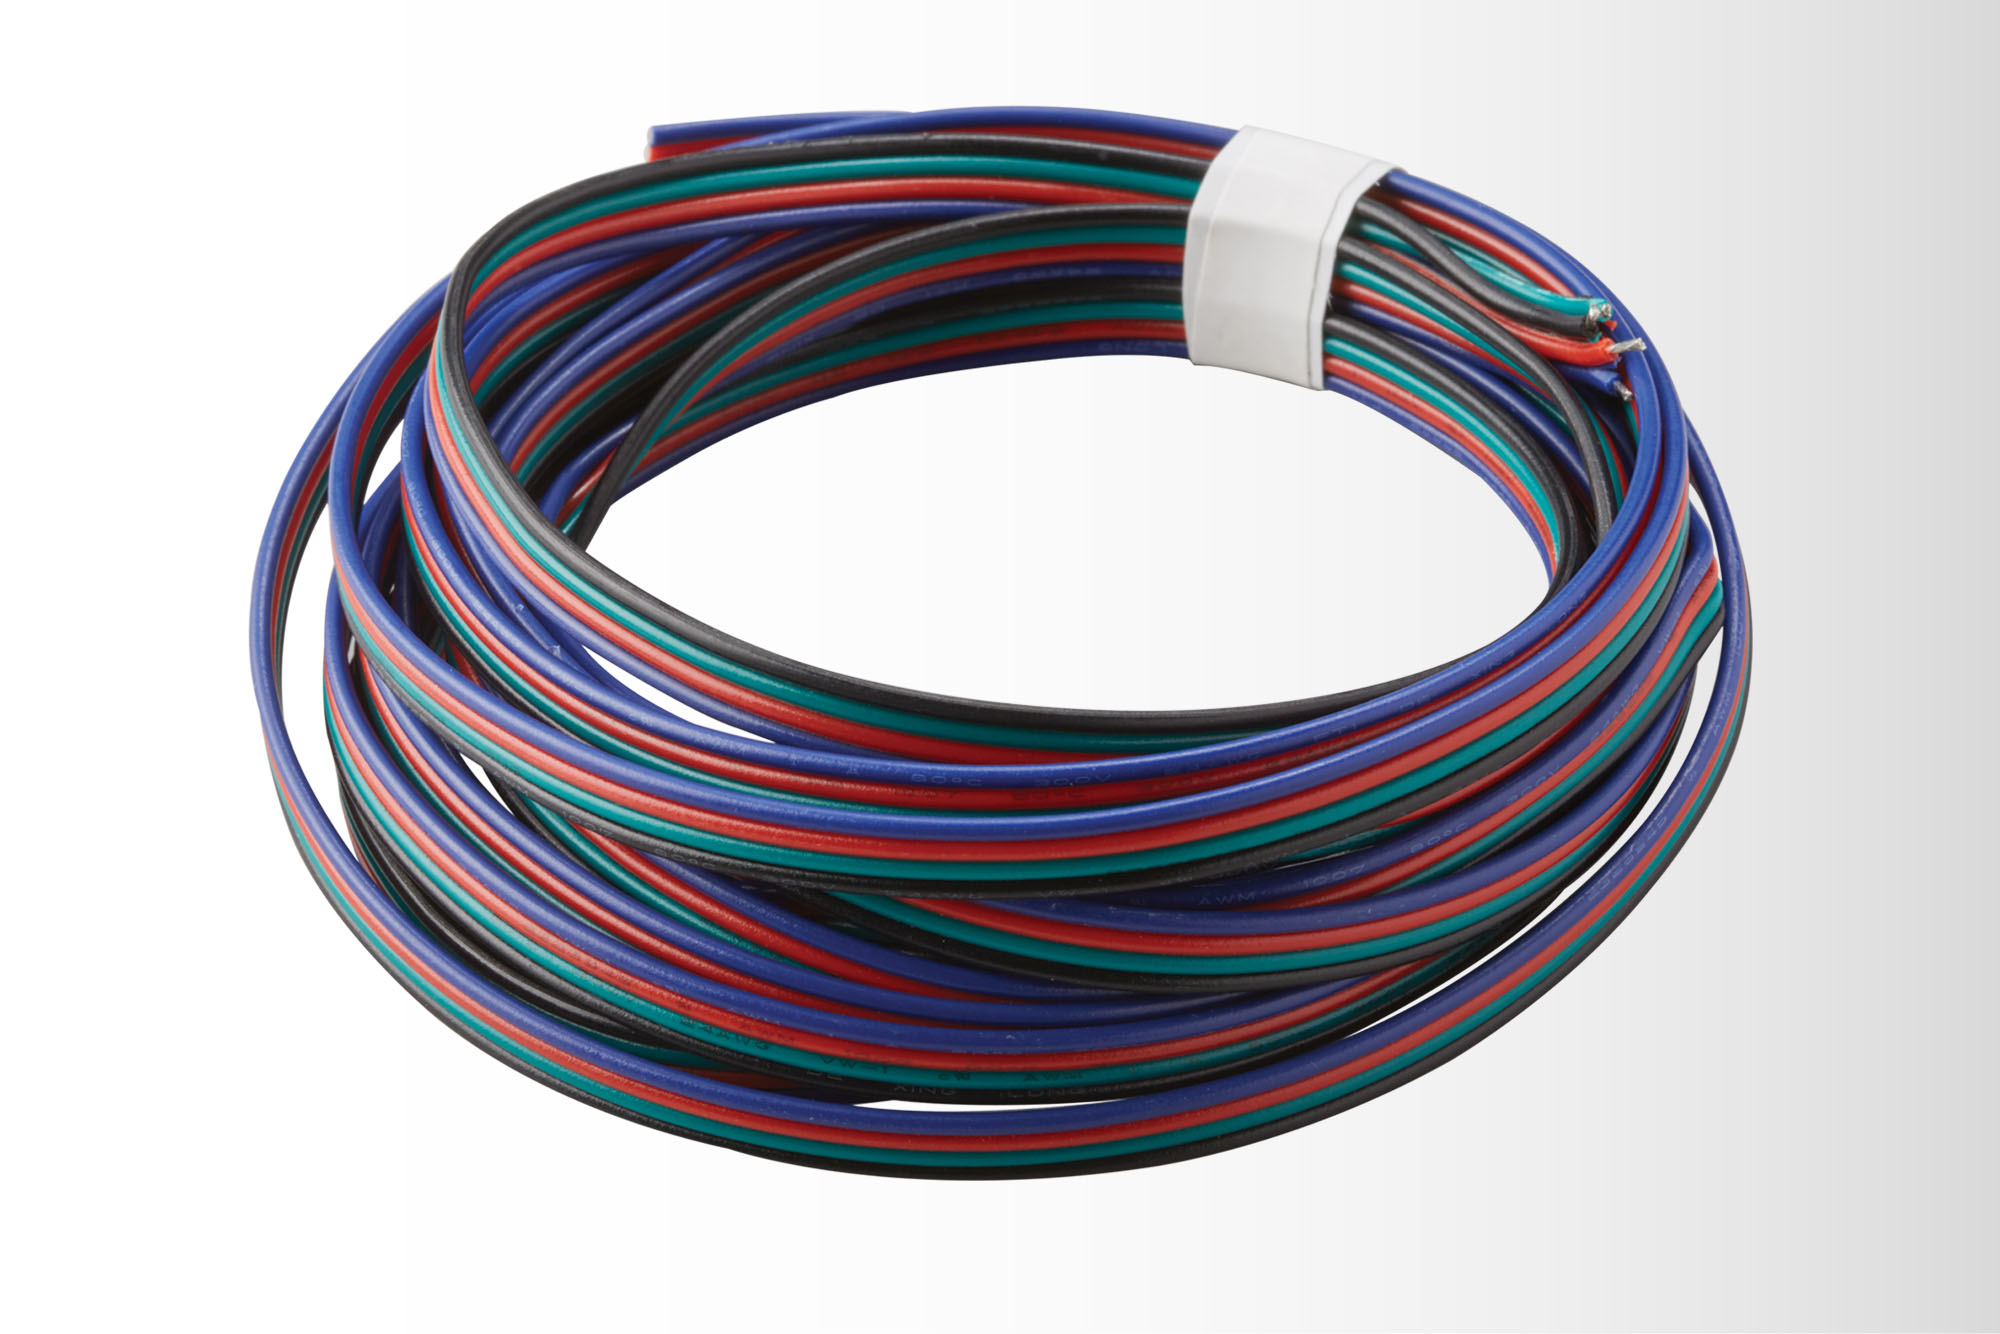 22 Gauge Electrical Wire - Dolgular.com